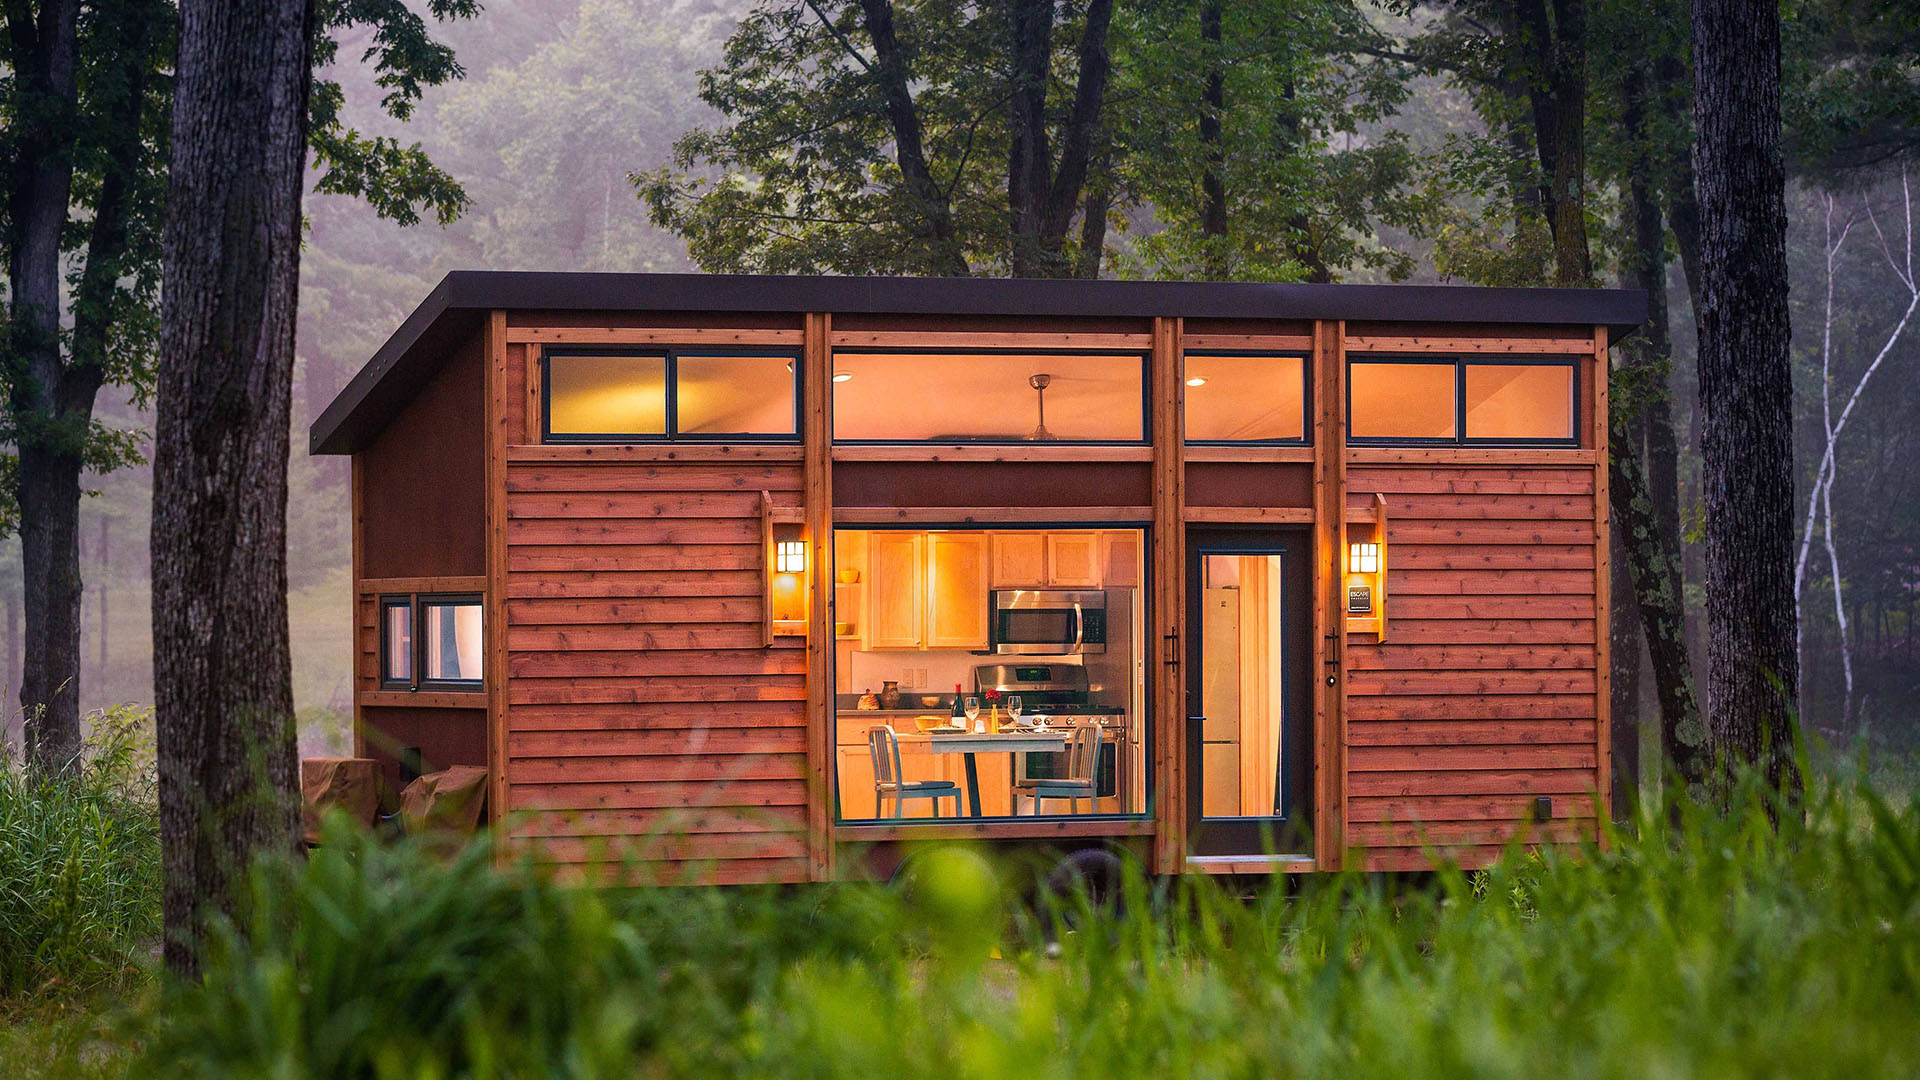 The Best Tiny House Rentals to Book for Your Next Big Adventure